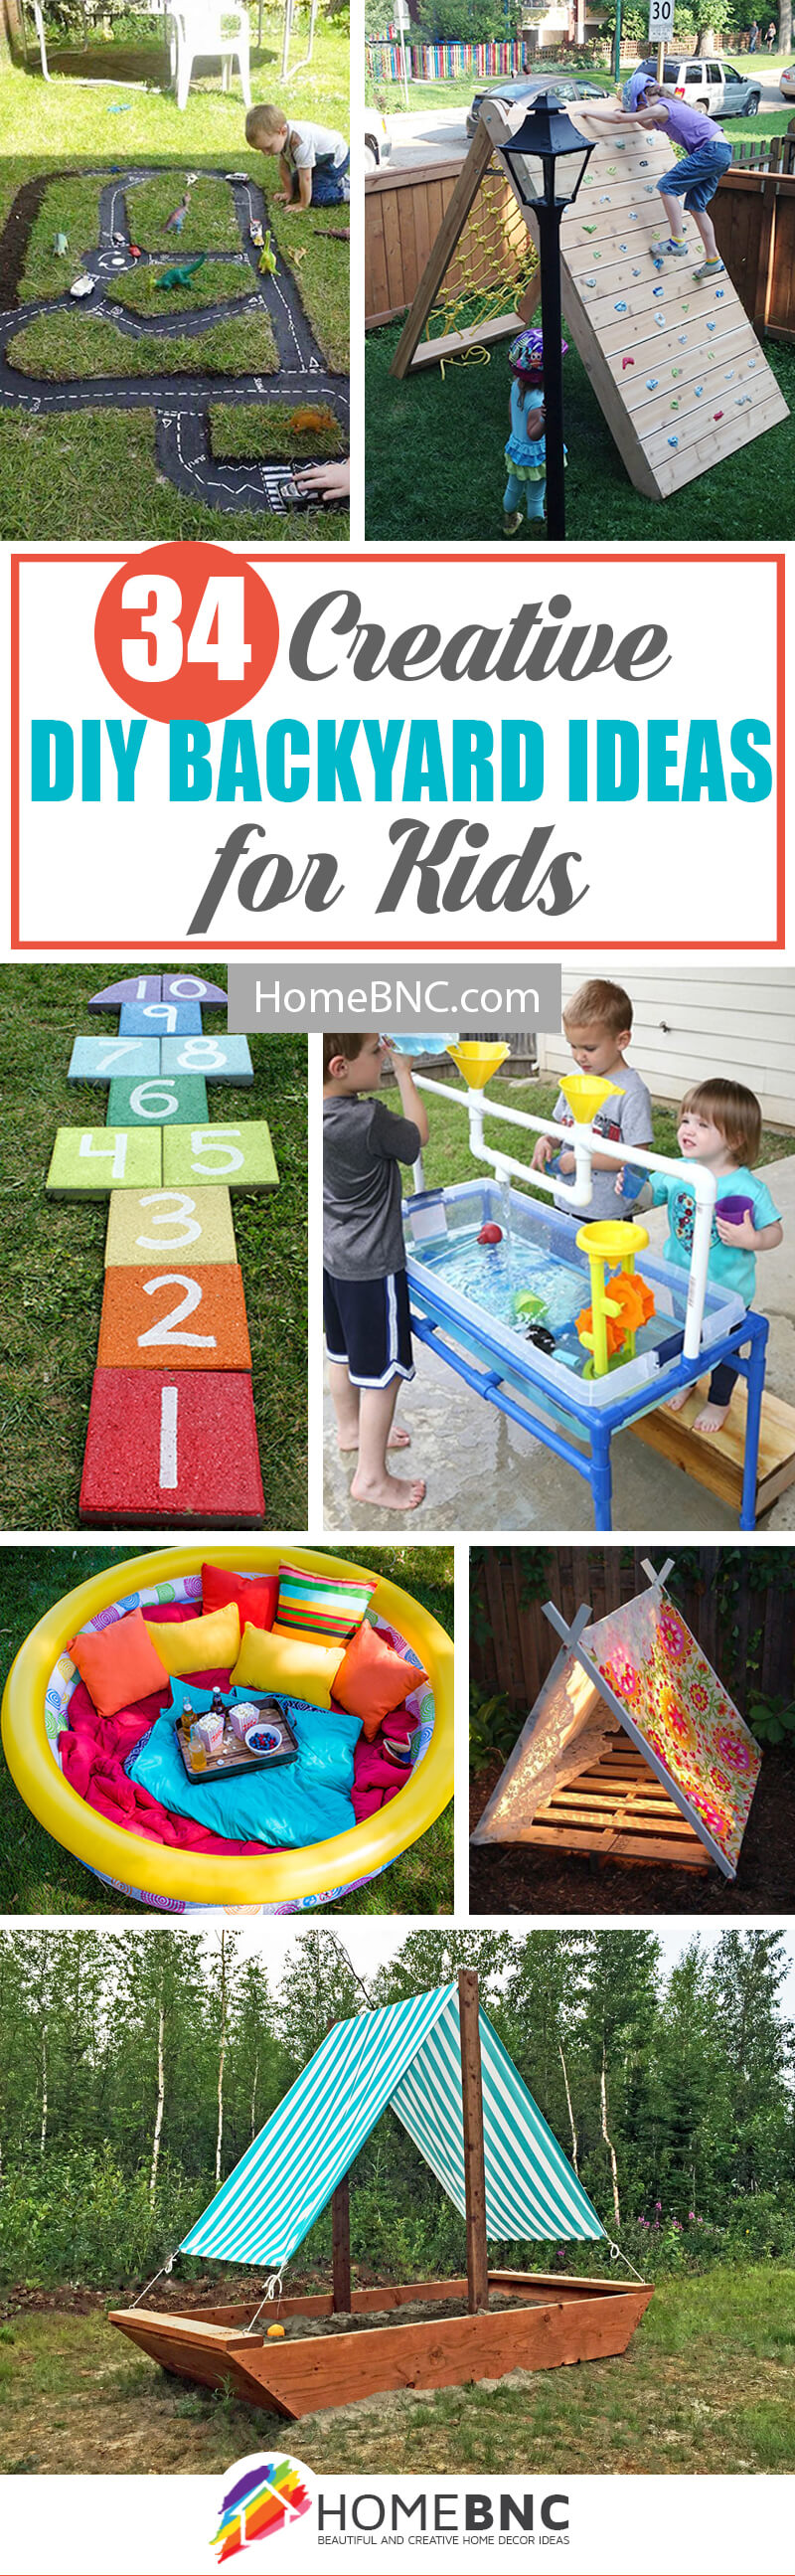 34 Exciting DIY Backyard Ideas For Kids This Summer